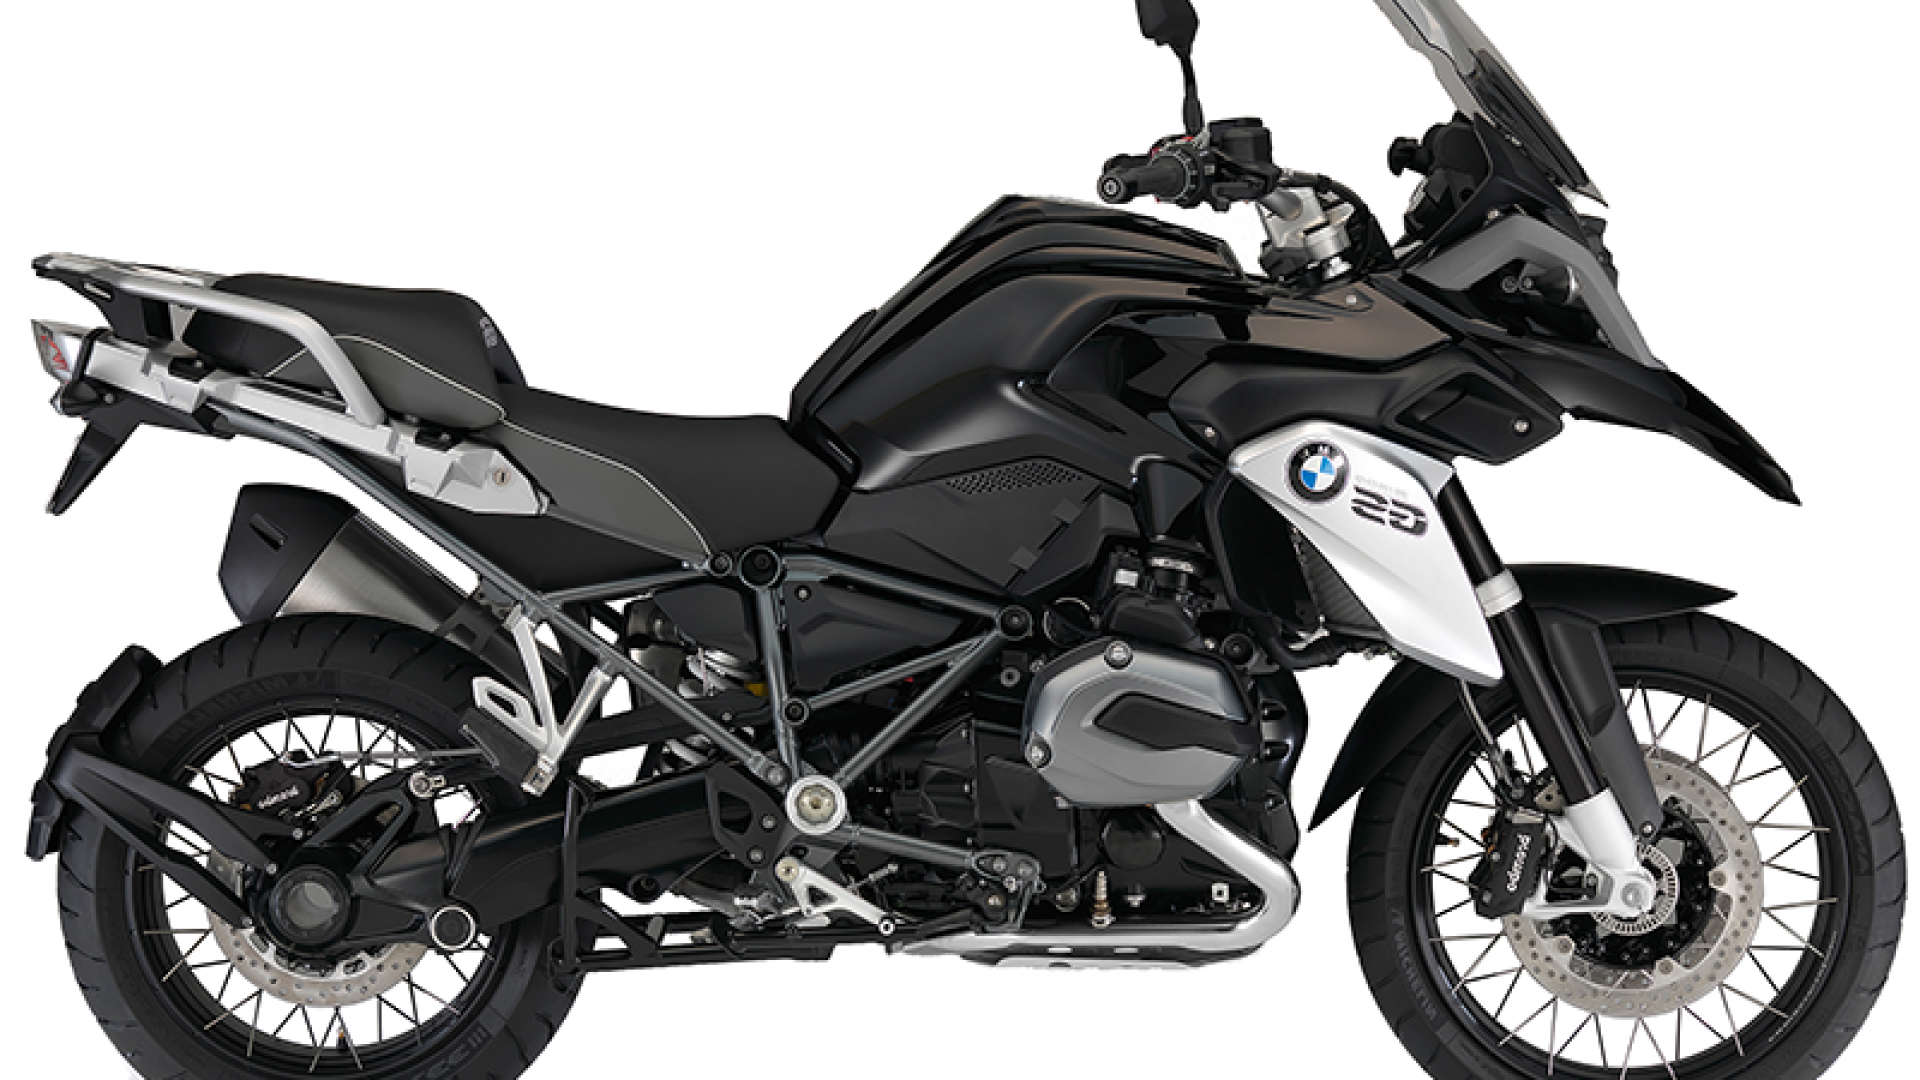 r1200 bmw ride mb motorcycle rental mexico